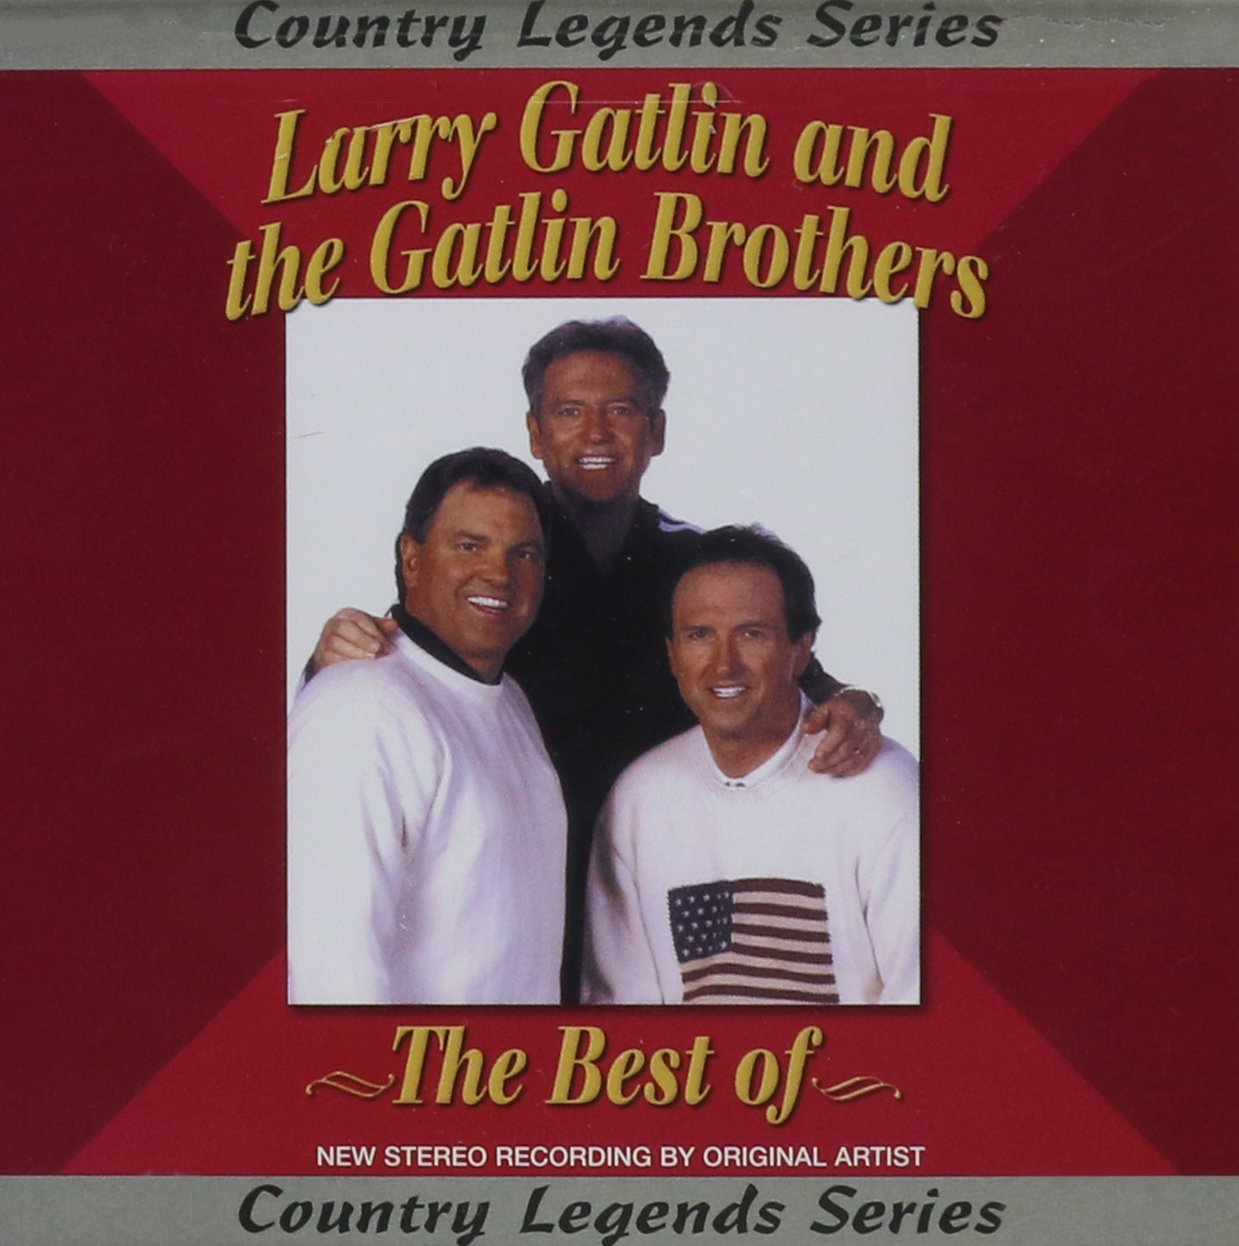 Best of Larry Gatlin and the Gatlin Brothers